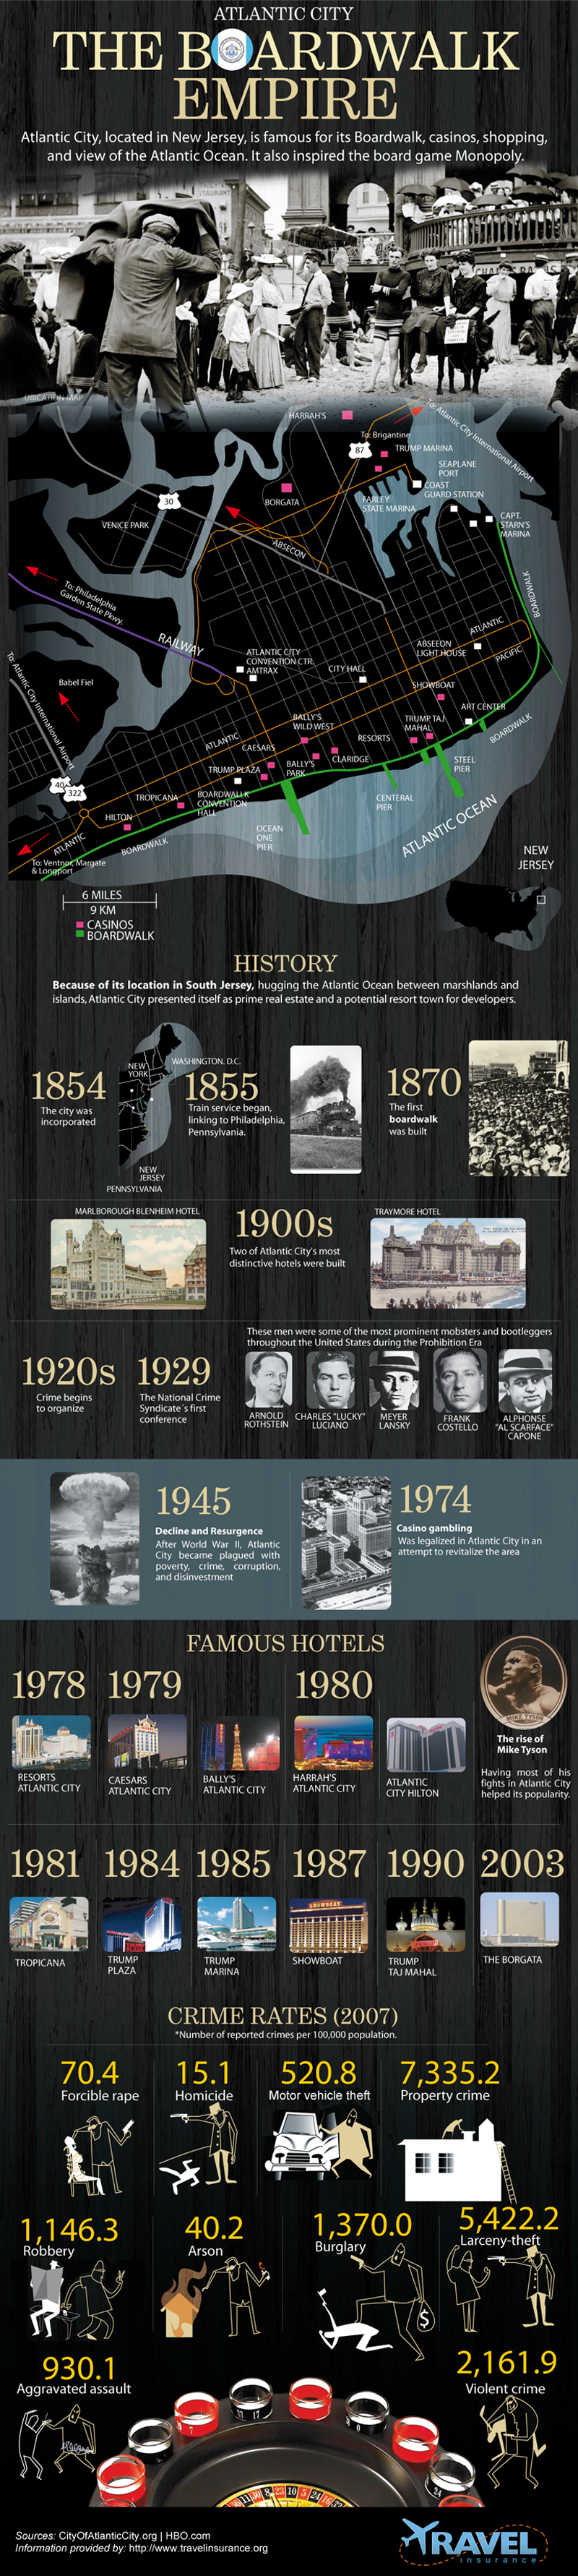 The Boardwalk Empire Infographic